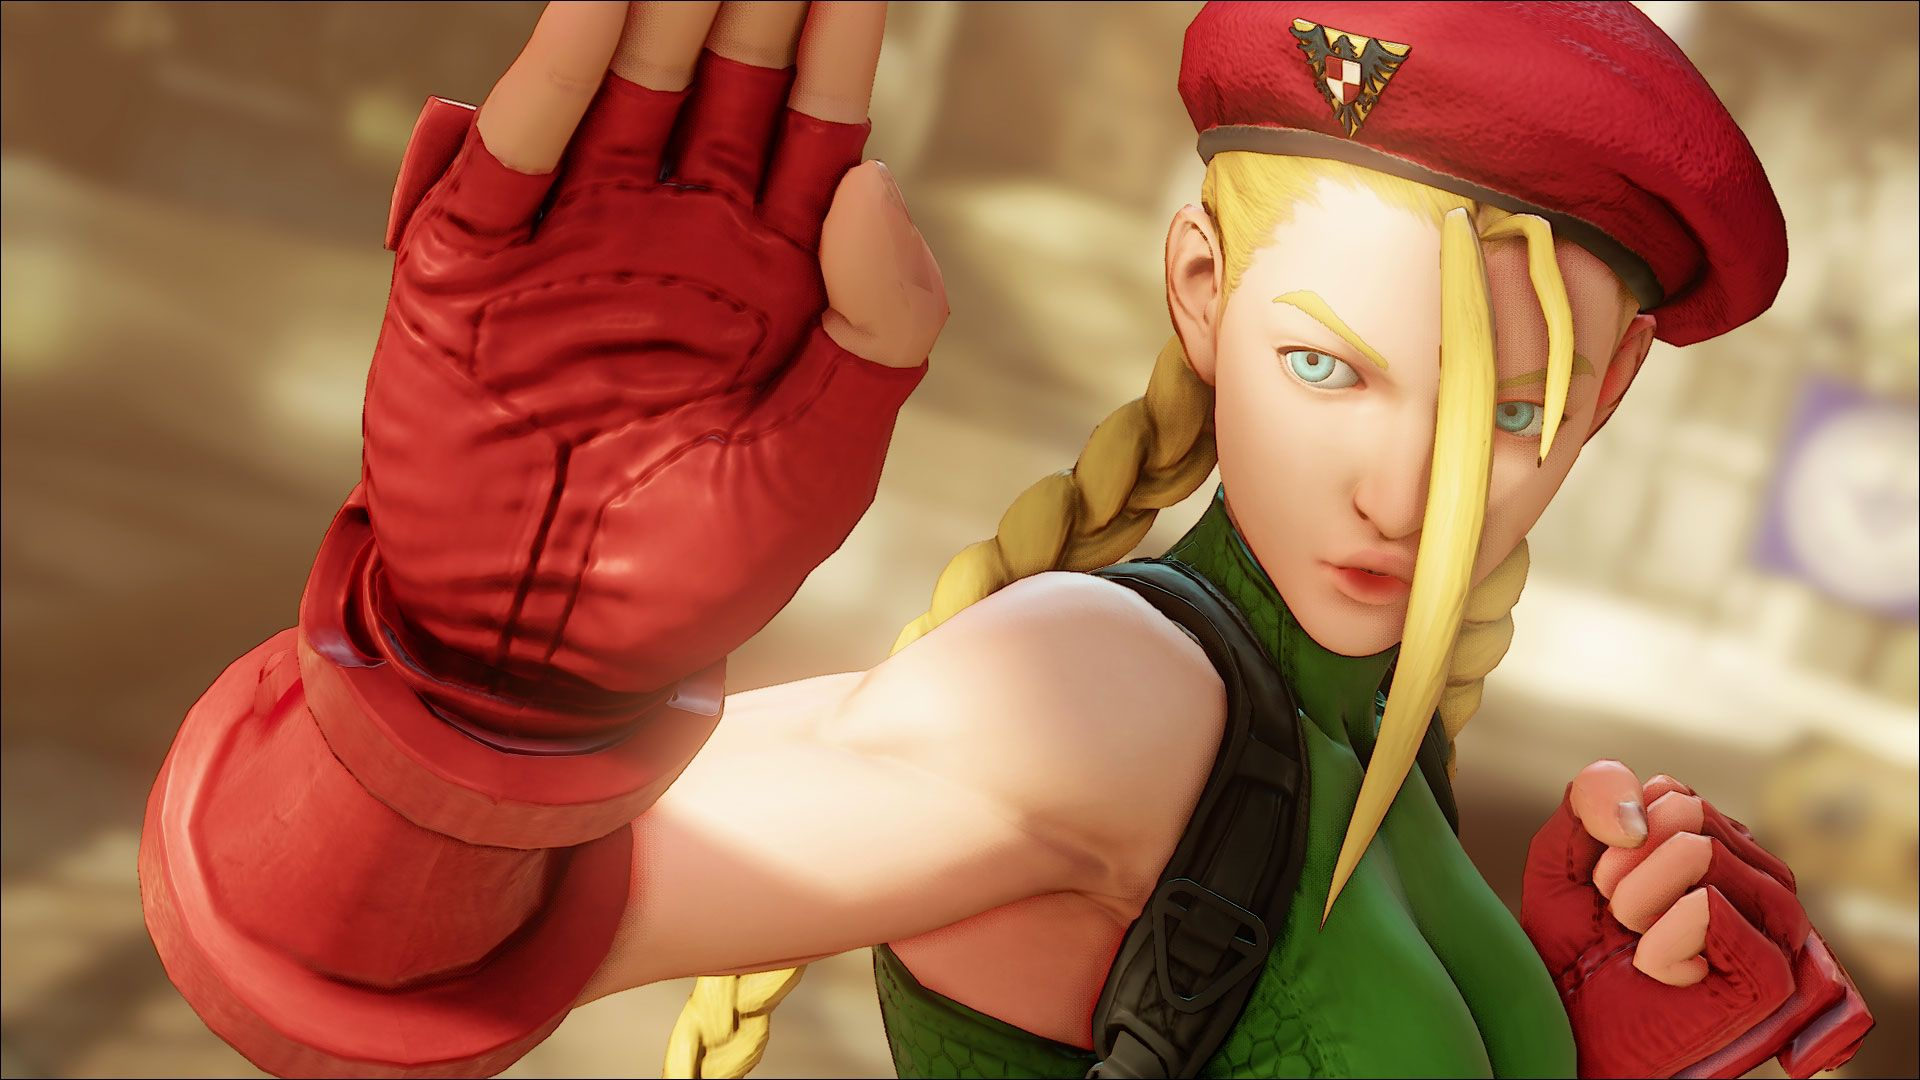 Cammy Wallpapers - Top Free Cammy Backgrounds - WallpaperAccess